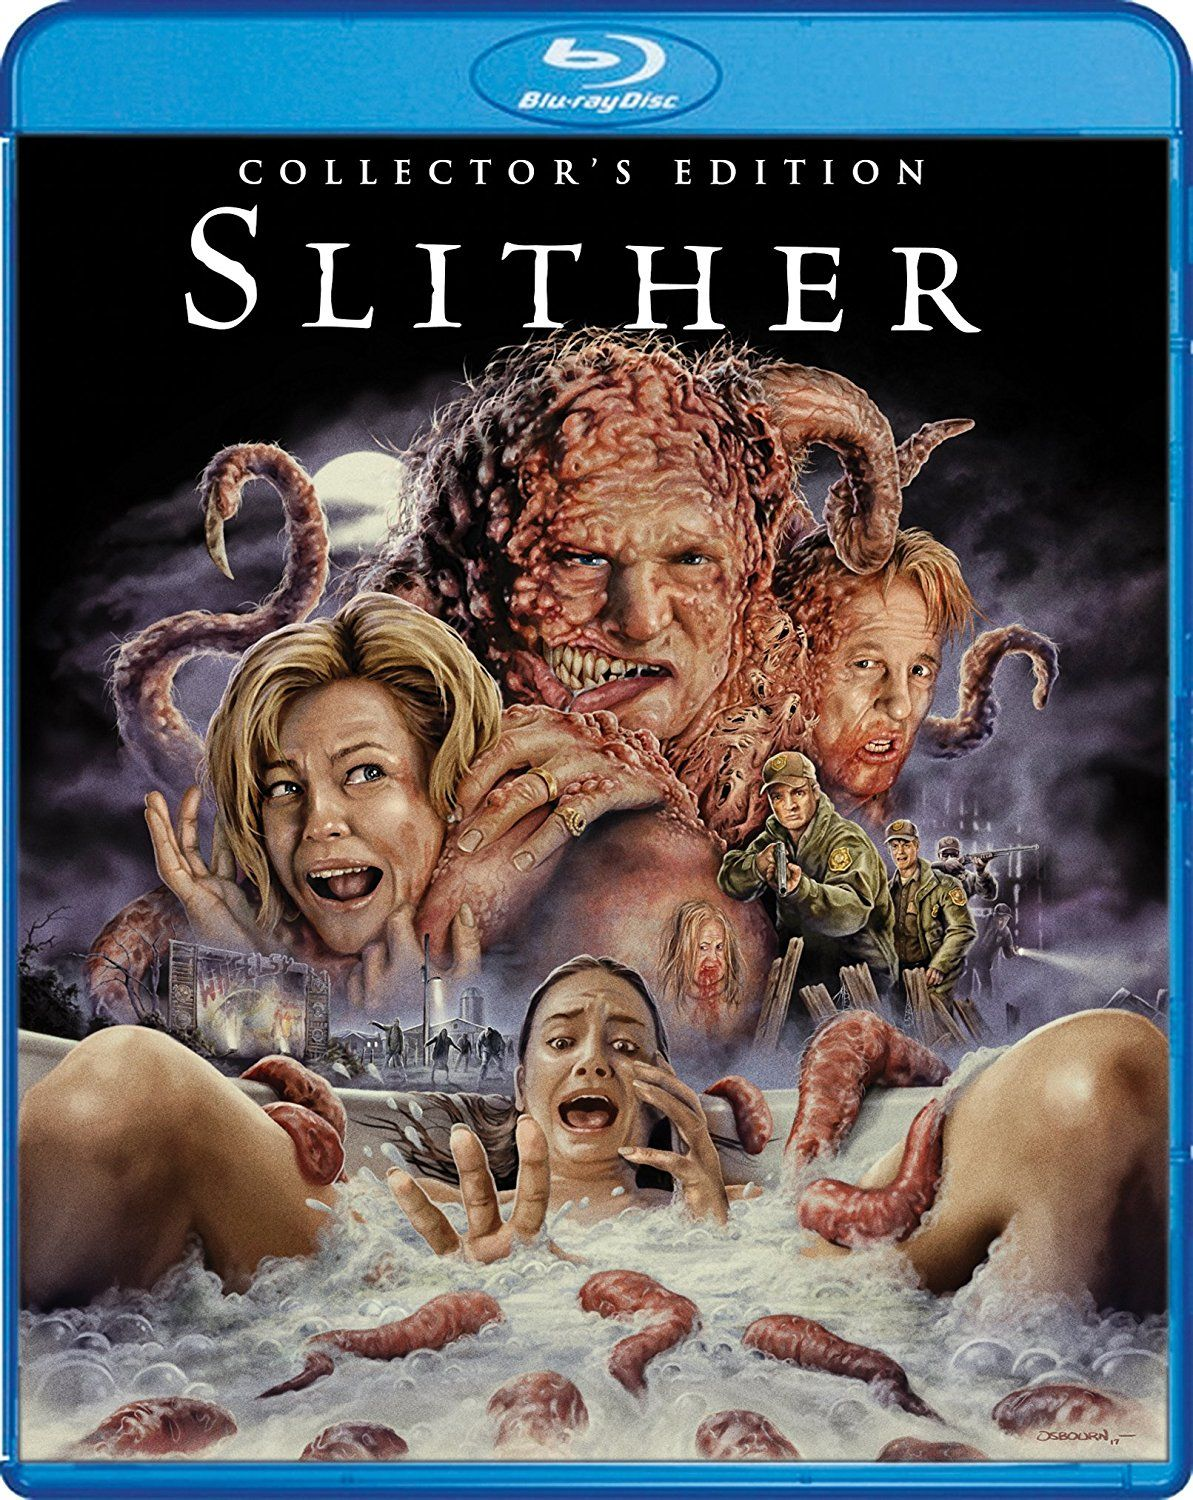 Slither Collector S Edition 2006 Blu Ray Horror Movie Posters Horror Fans Horror Movie Art